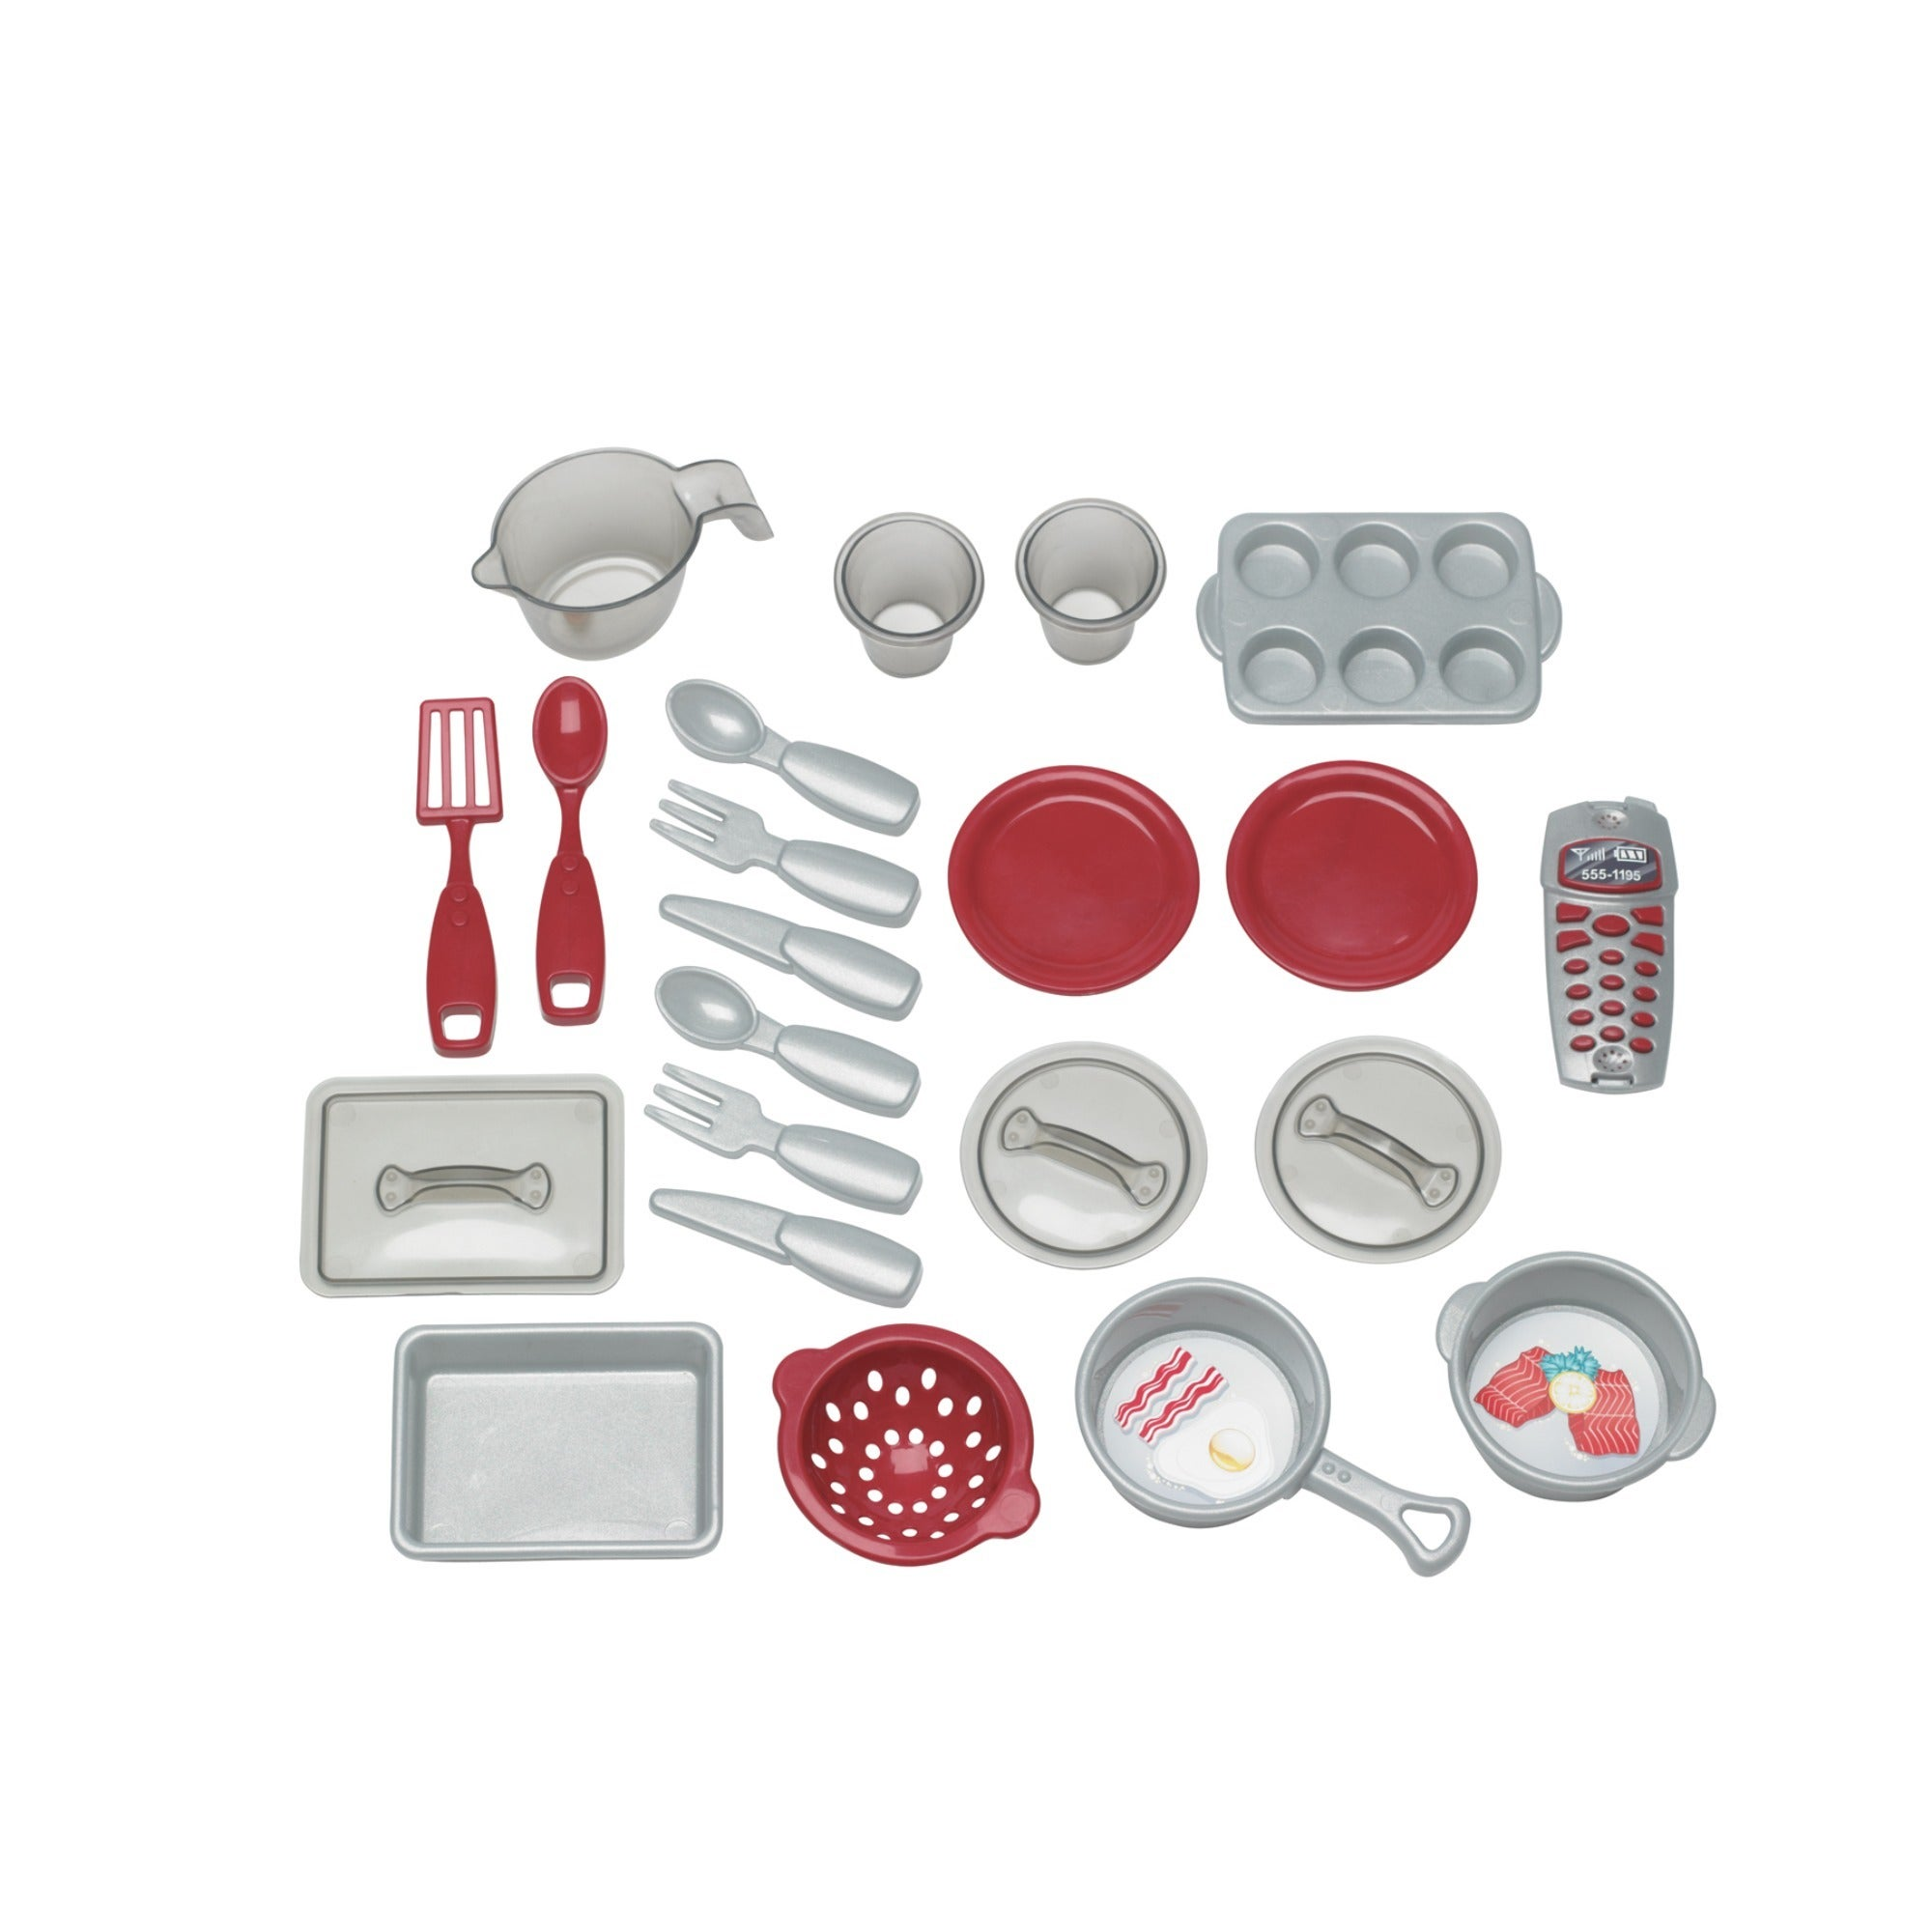 american plastic toys cookin kitchen play set with realistic burners   white   free shipping today   overstock com   13920034 american plastic toys cookin kitchen play set with realistic      rh   overstock com